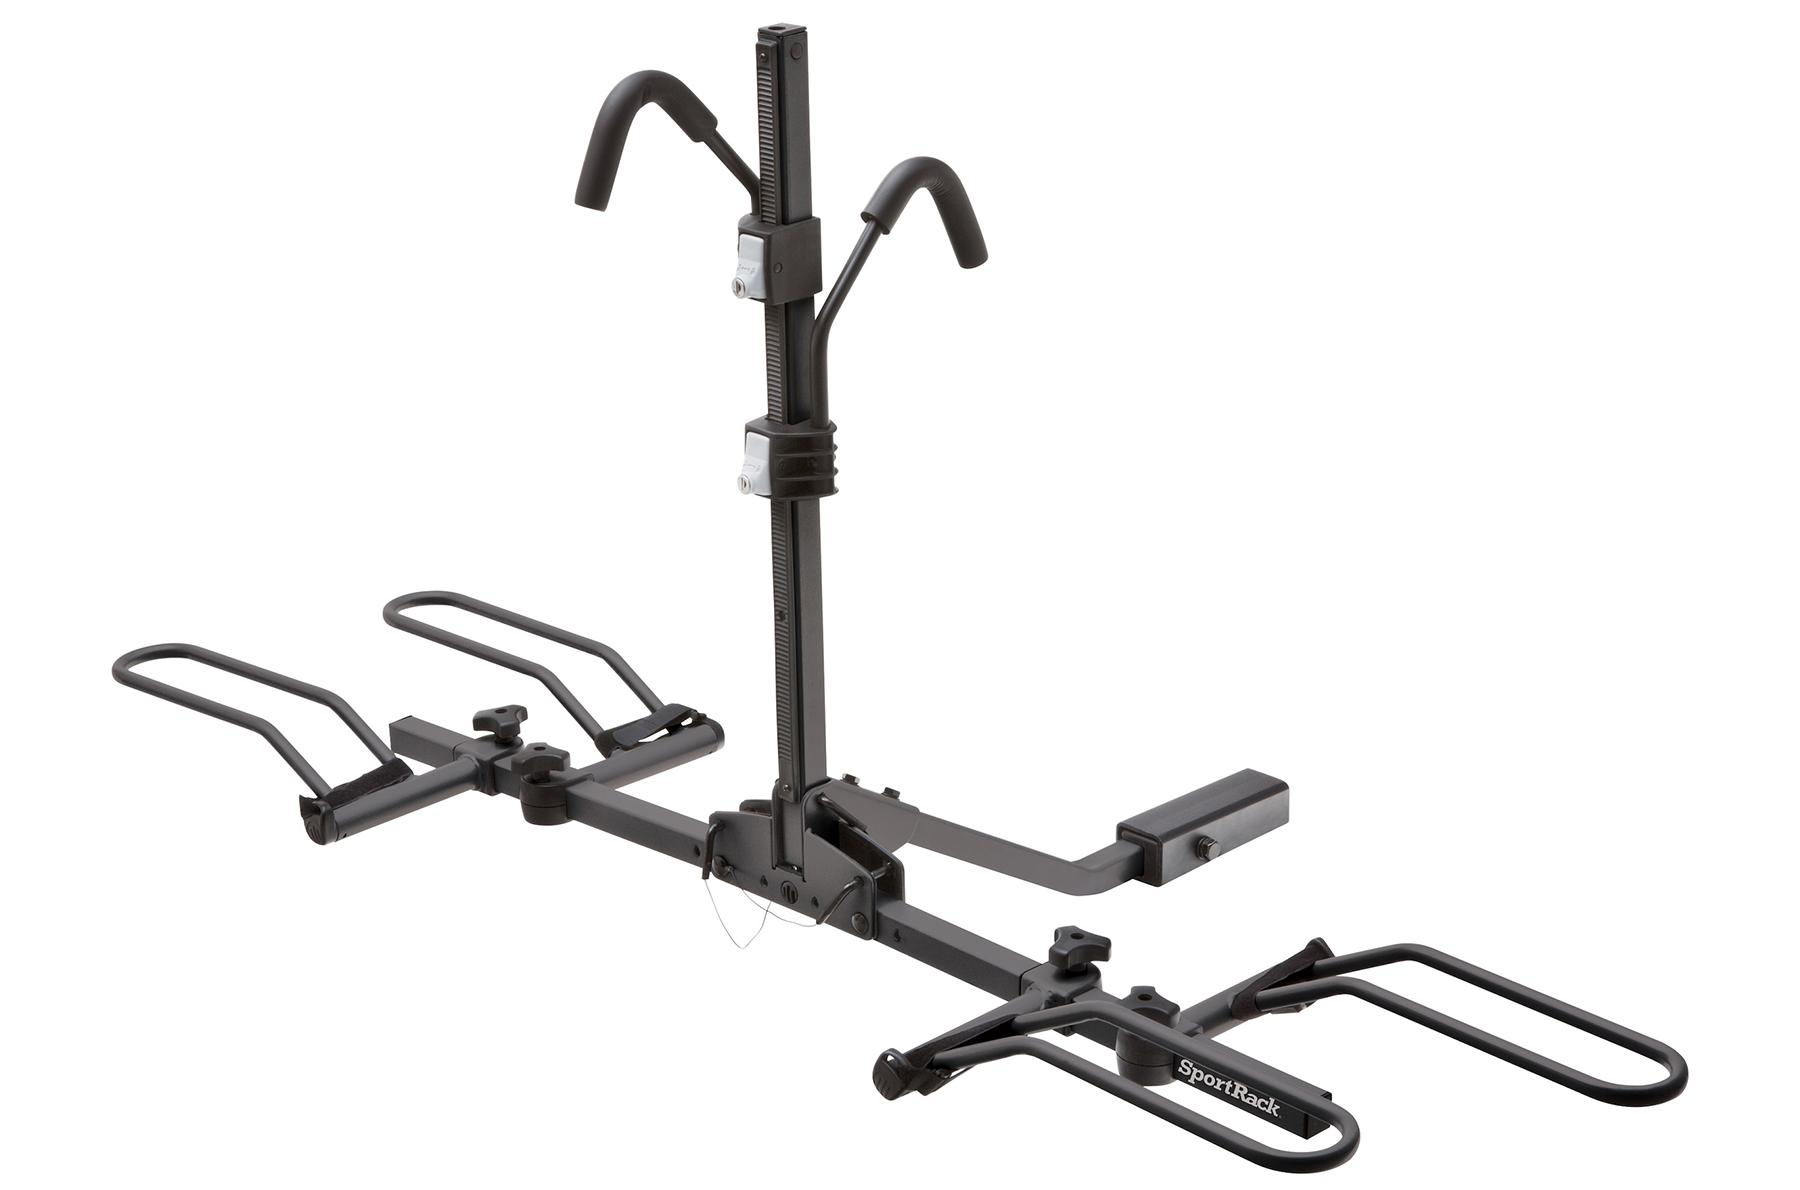 SportRack SR2901BLR - 2 Bike Locking Platform Hitch Rack